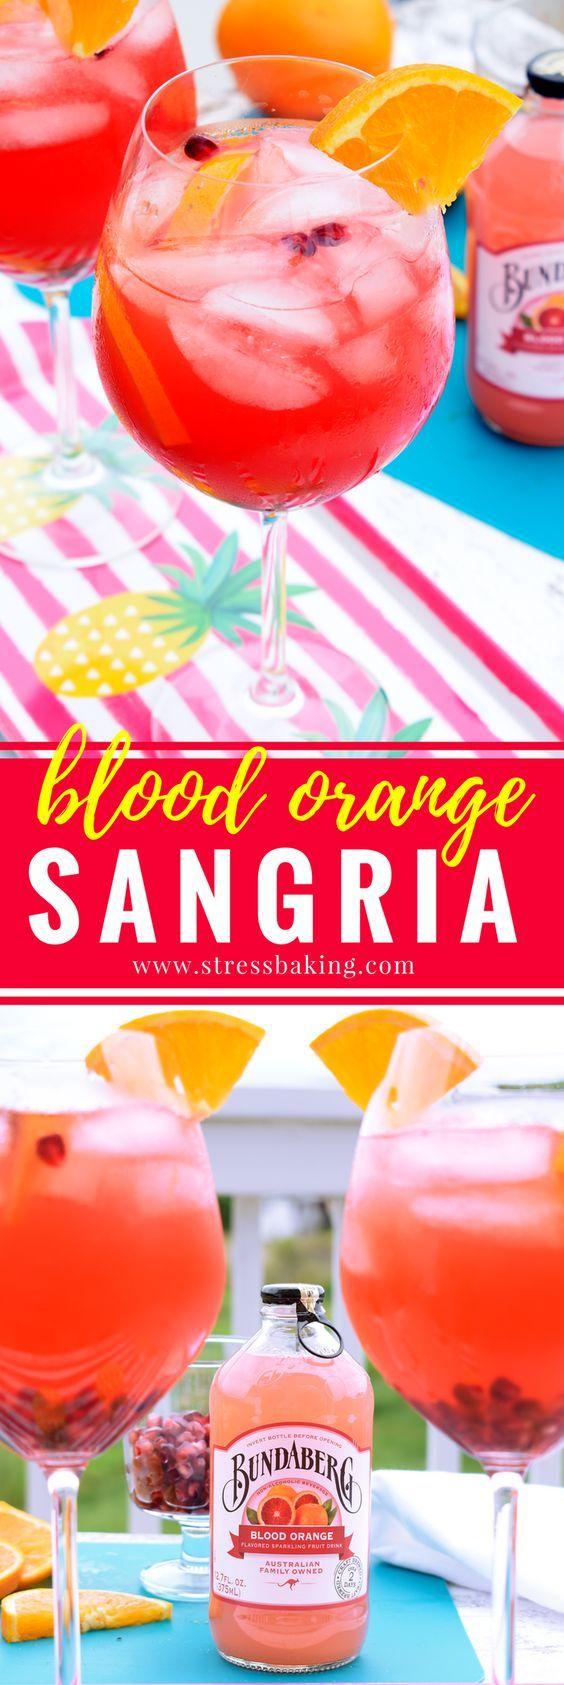 This Blood Orange Sangria looks so refreshing! I can't wait to enjoy this beautiful, vibrant and delightfully fruity sangria made with Bundaberg Blood Orange. AD Msg21+ http://stressbaking.com/2017/05/blood-orange-sangria.html/